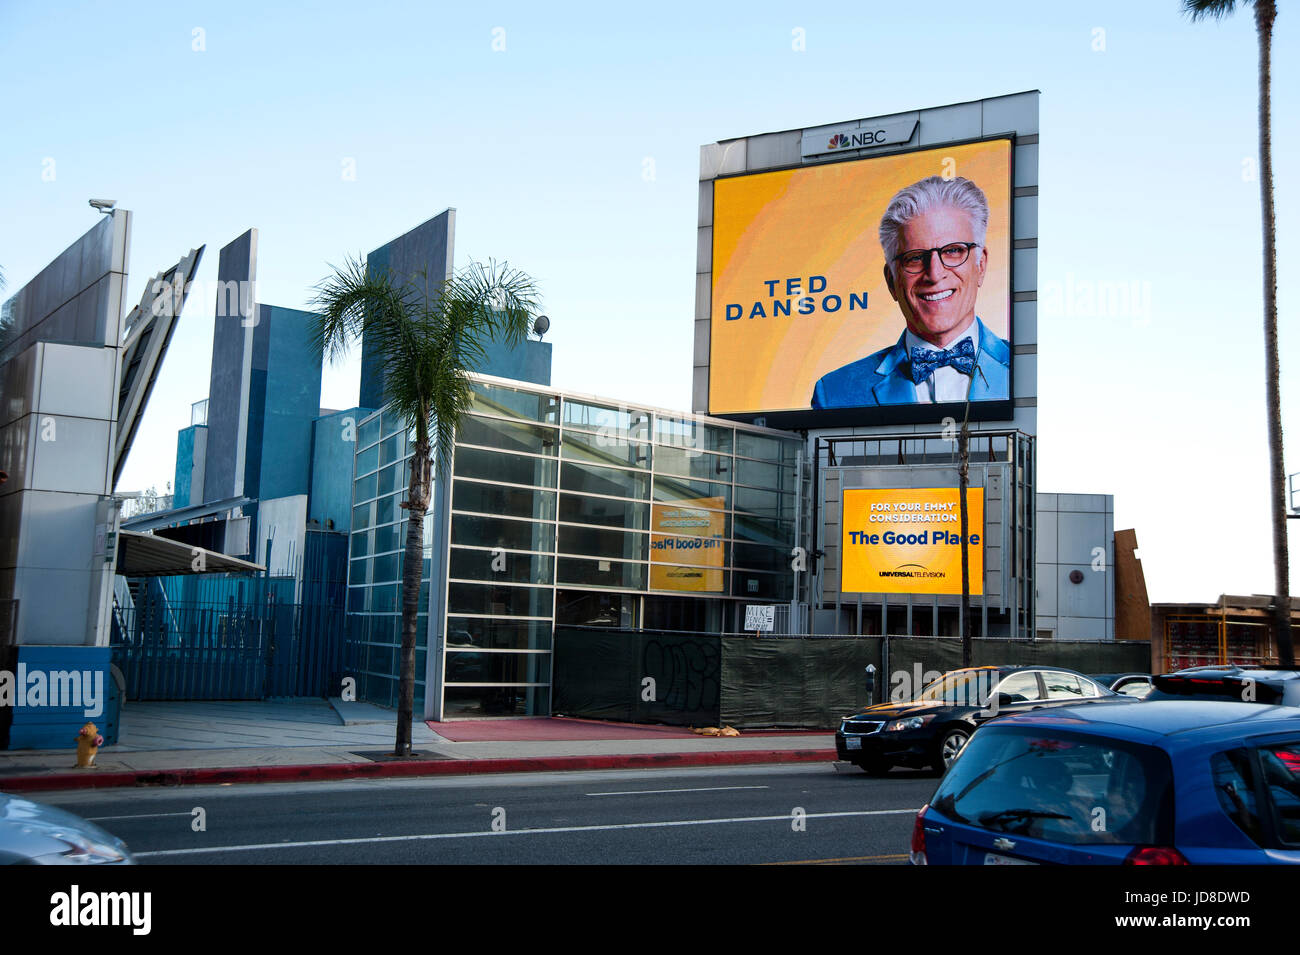 Digital billboard on the Sunset Strip in Los Angeles promoting NBC television star Ted Danson and the show The Good - Stock Image